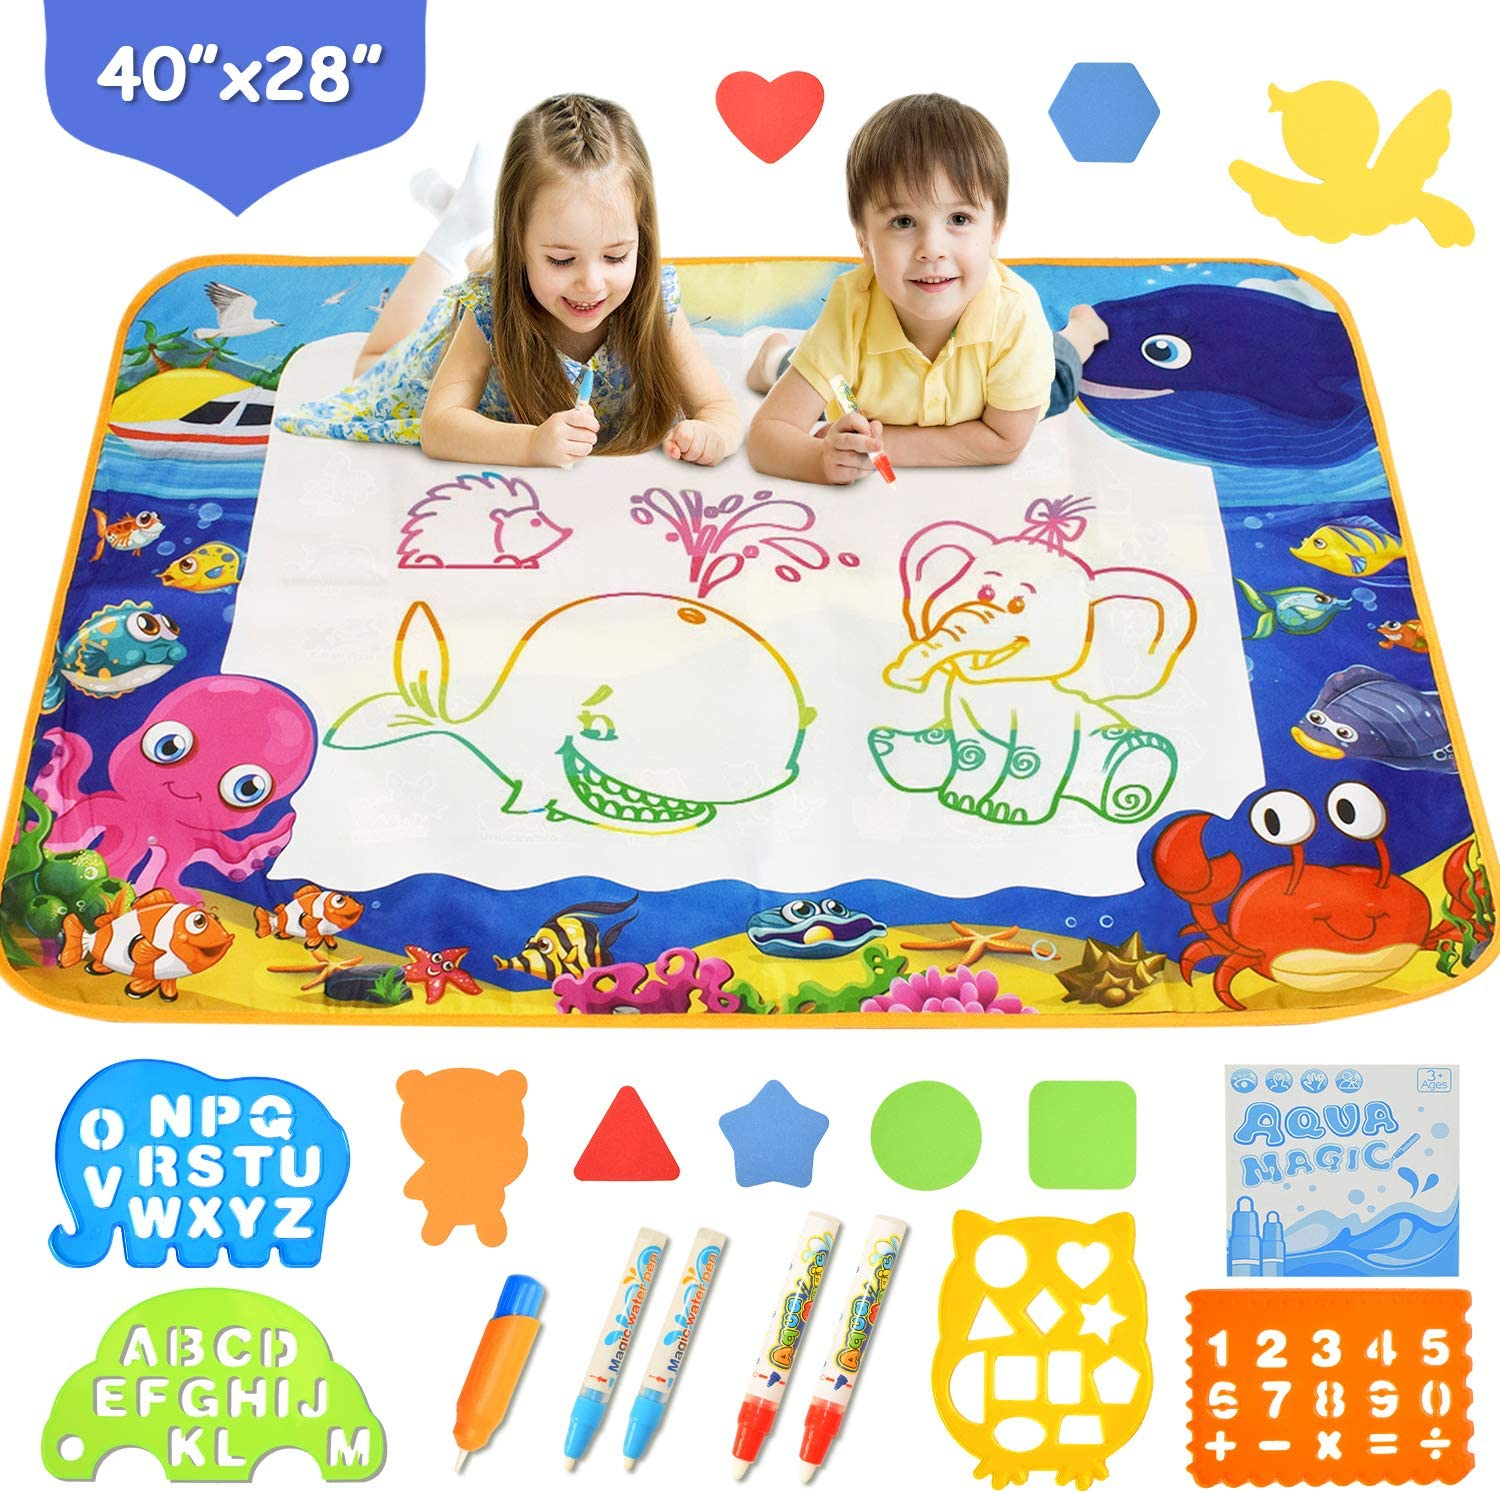 Mixi Aqua Magic Mat, Kids Toys Age 2 3 4 5 6 Year Old Girls Boys Extra Large Doodle Mat Painting Board, Water Drawing Mat for Kids with Doodle Pen, Educational Toys for Kids Toddler Gifts